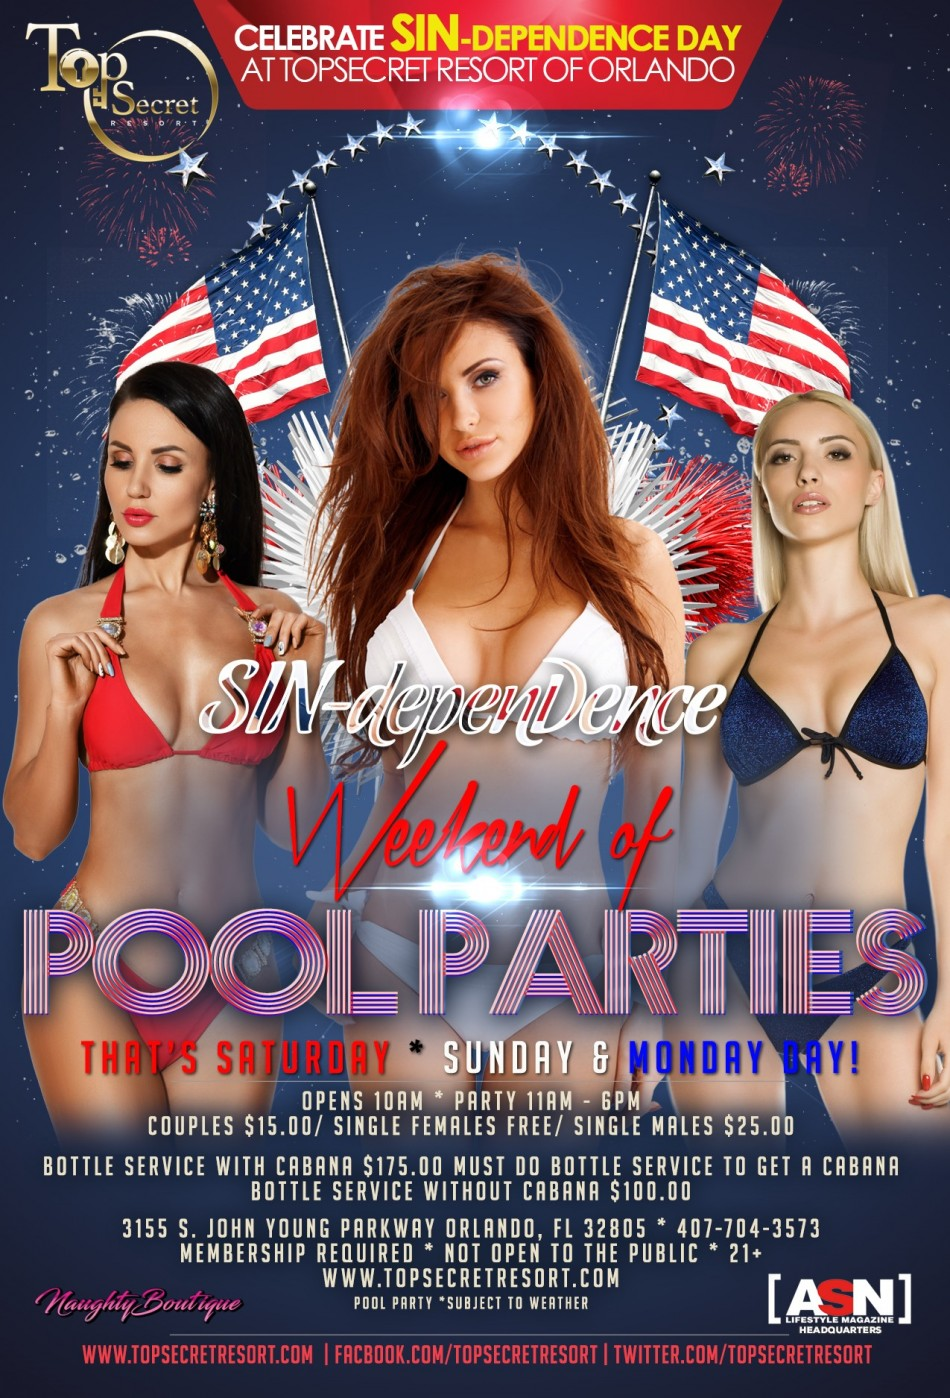 SIN-Dependence Weekend - Monday Pool Party